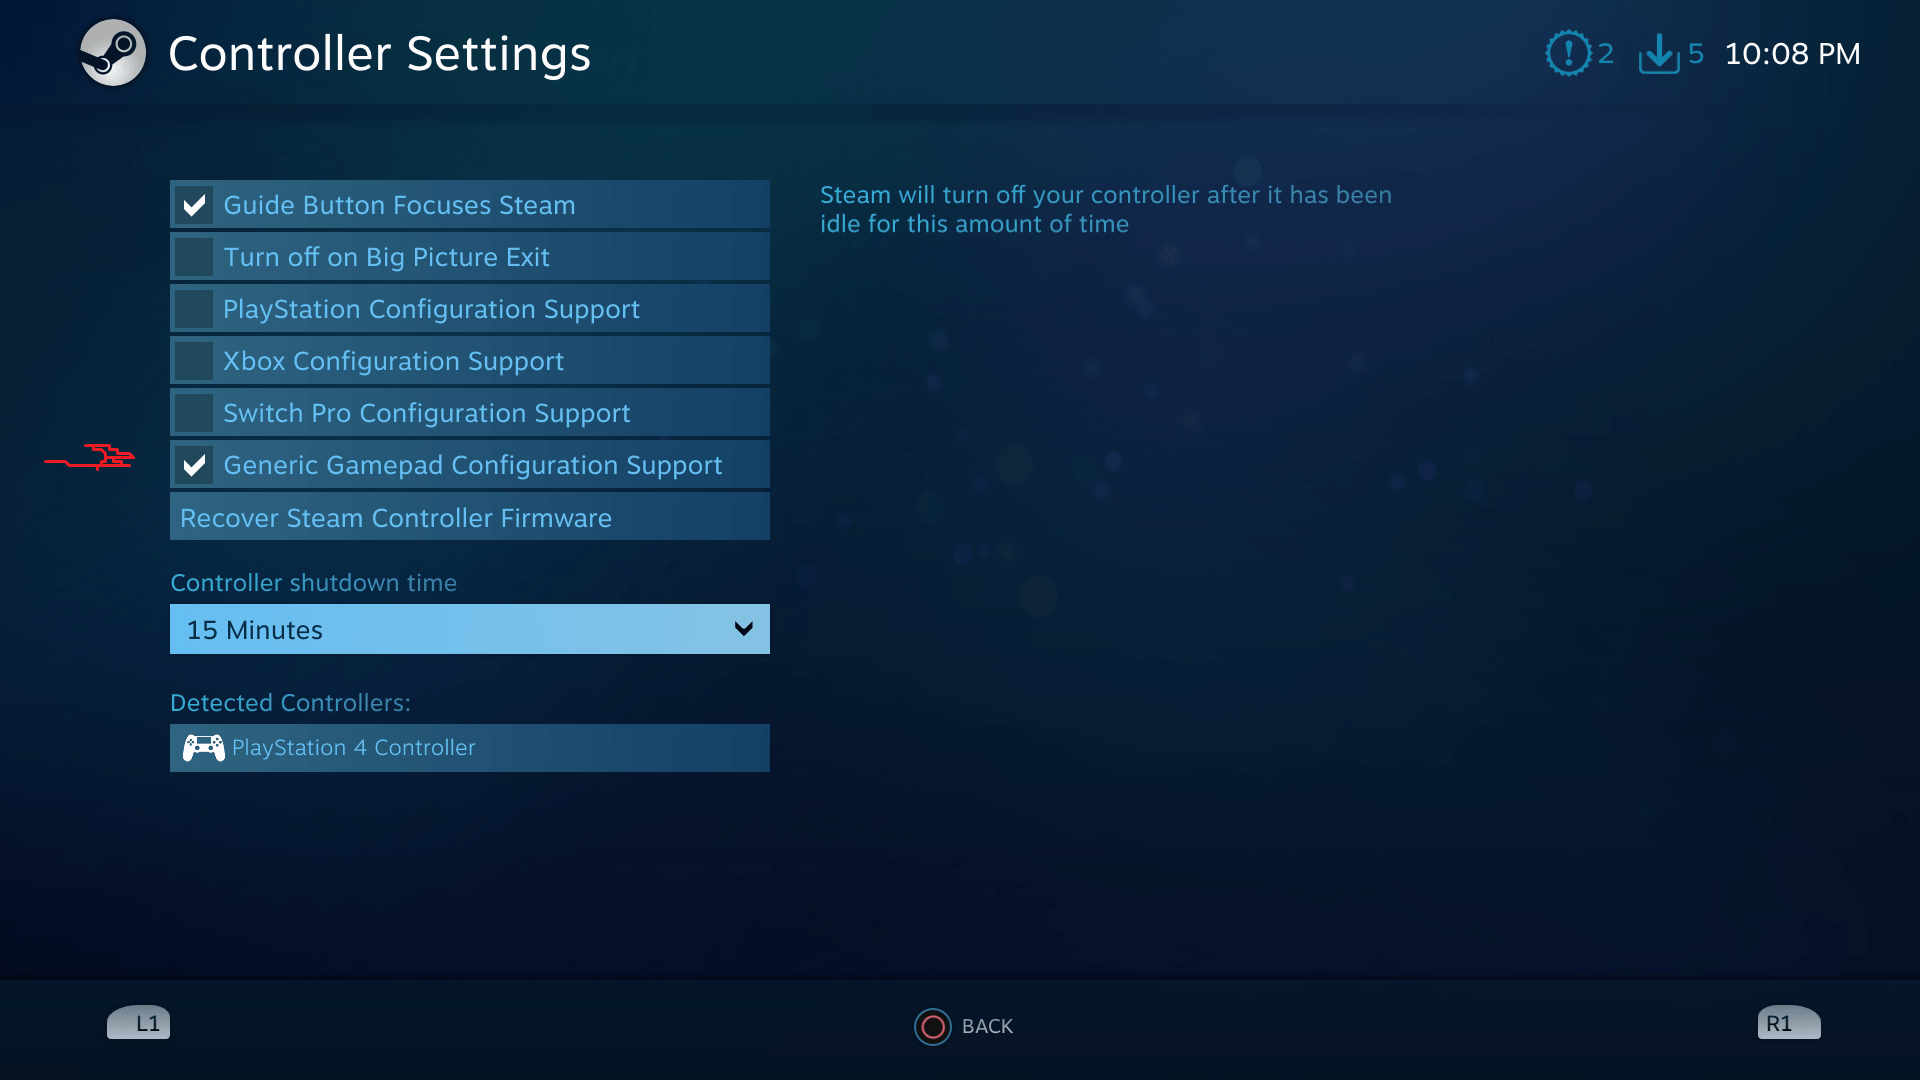 Outer Wilds - Playstation 4 Configuration